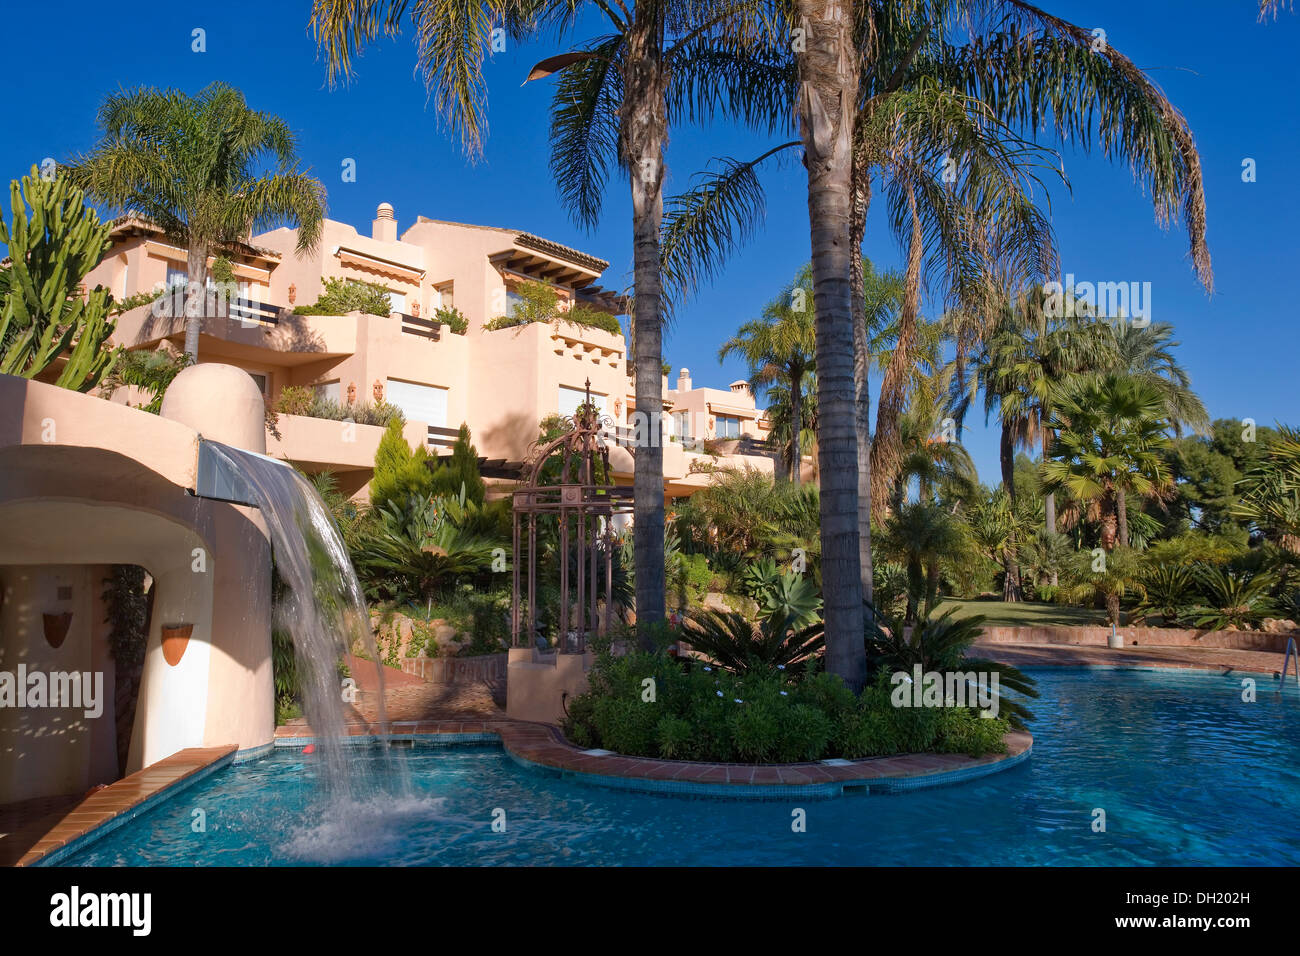 Palm trees beside swimming pool with small water chute in garden of stock photo royalty free for Best palm tree for swimming pool